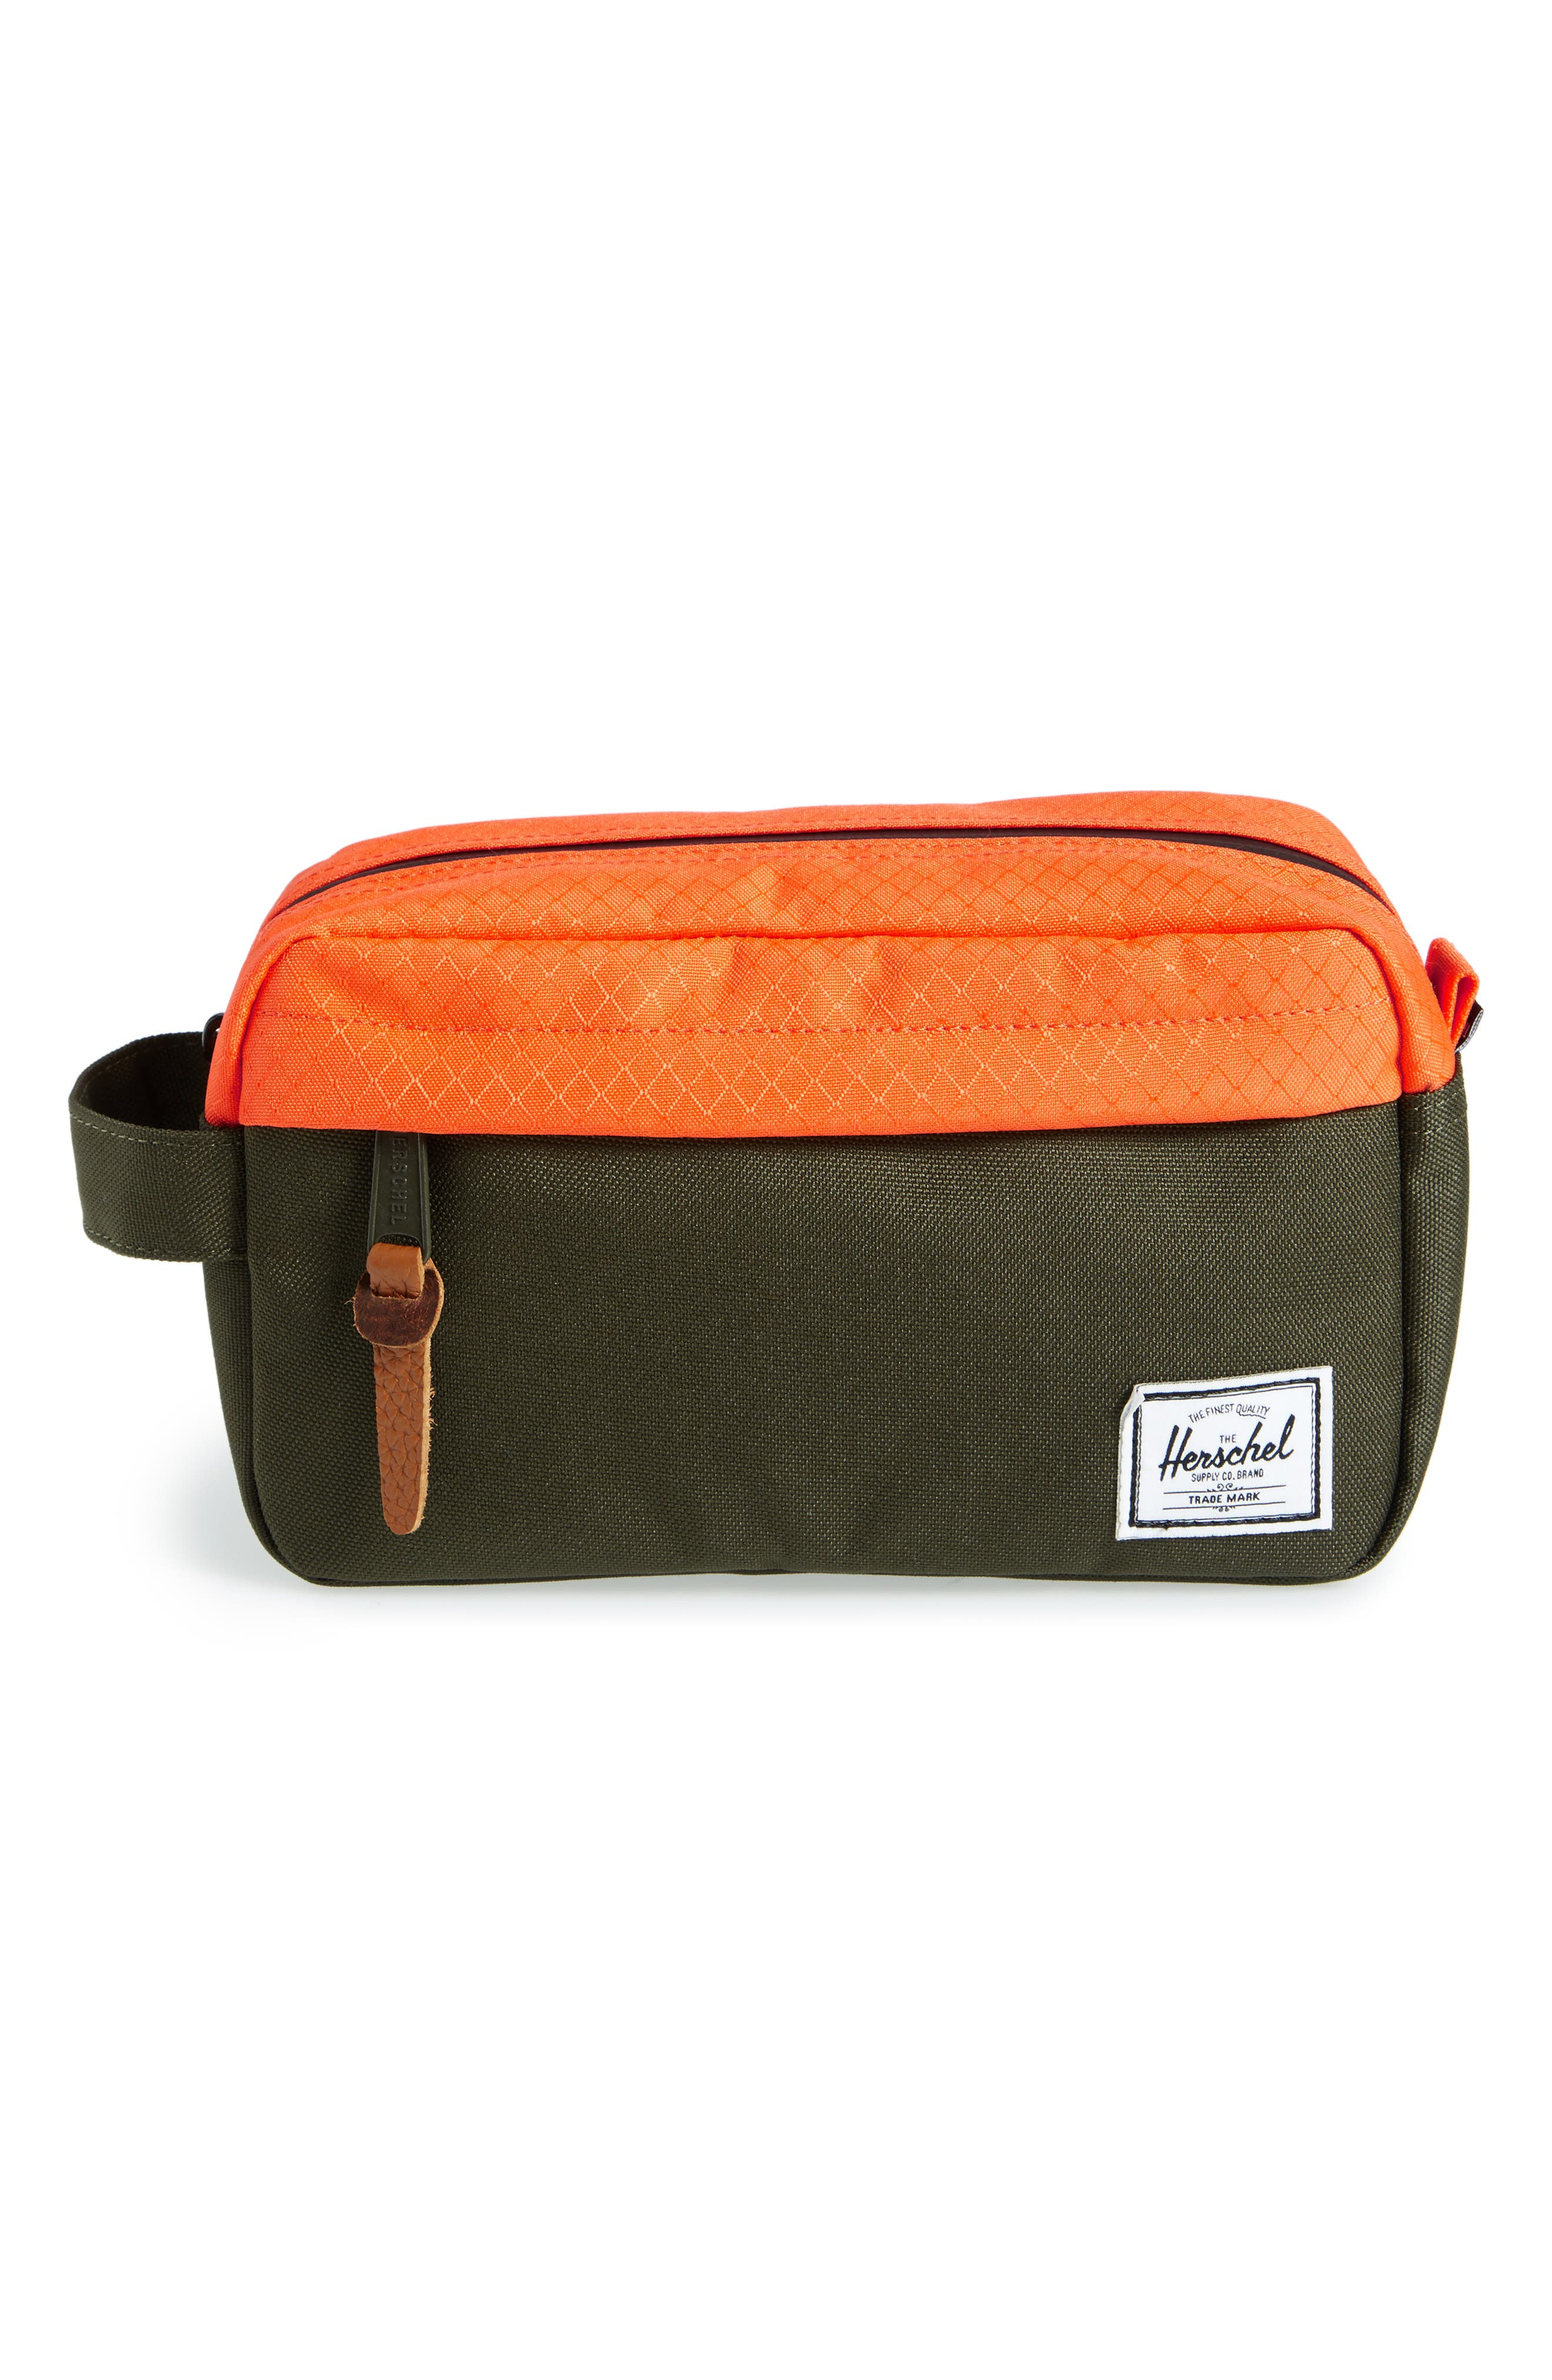 Chapter Carry-On Travel Kit,                             Main thumbnail 1, color,                             Forest Night/ Orange